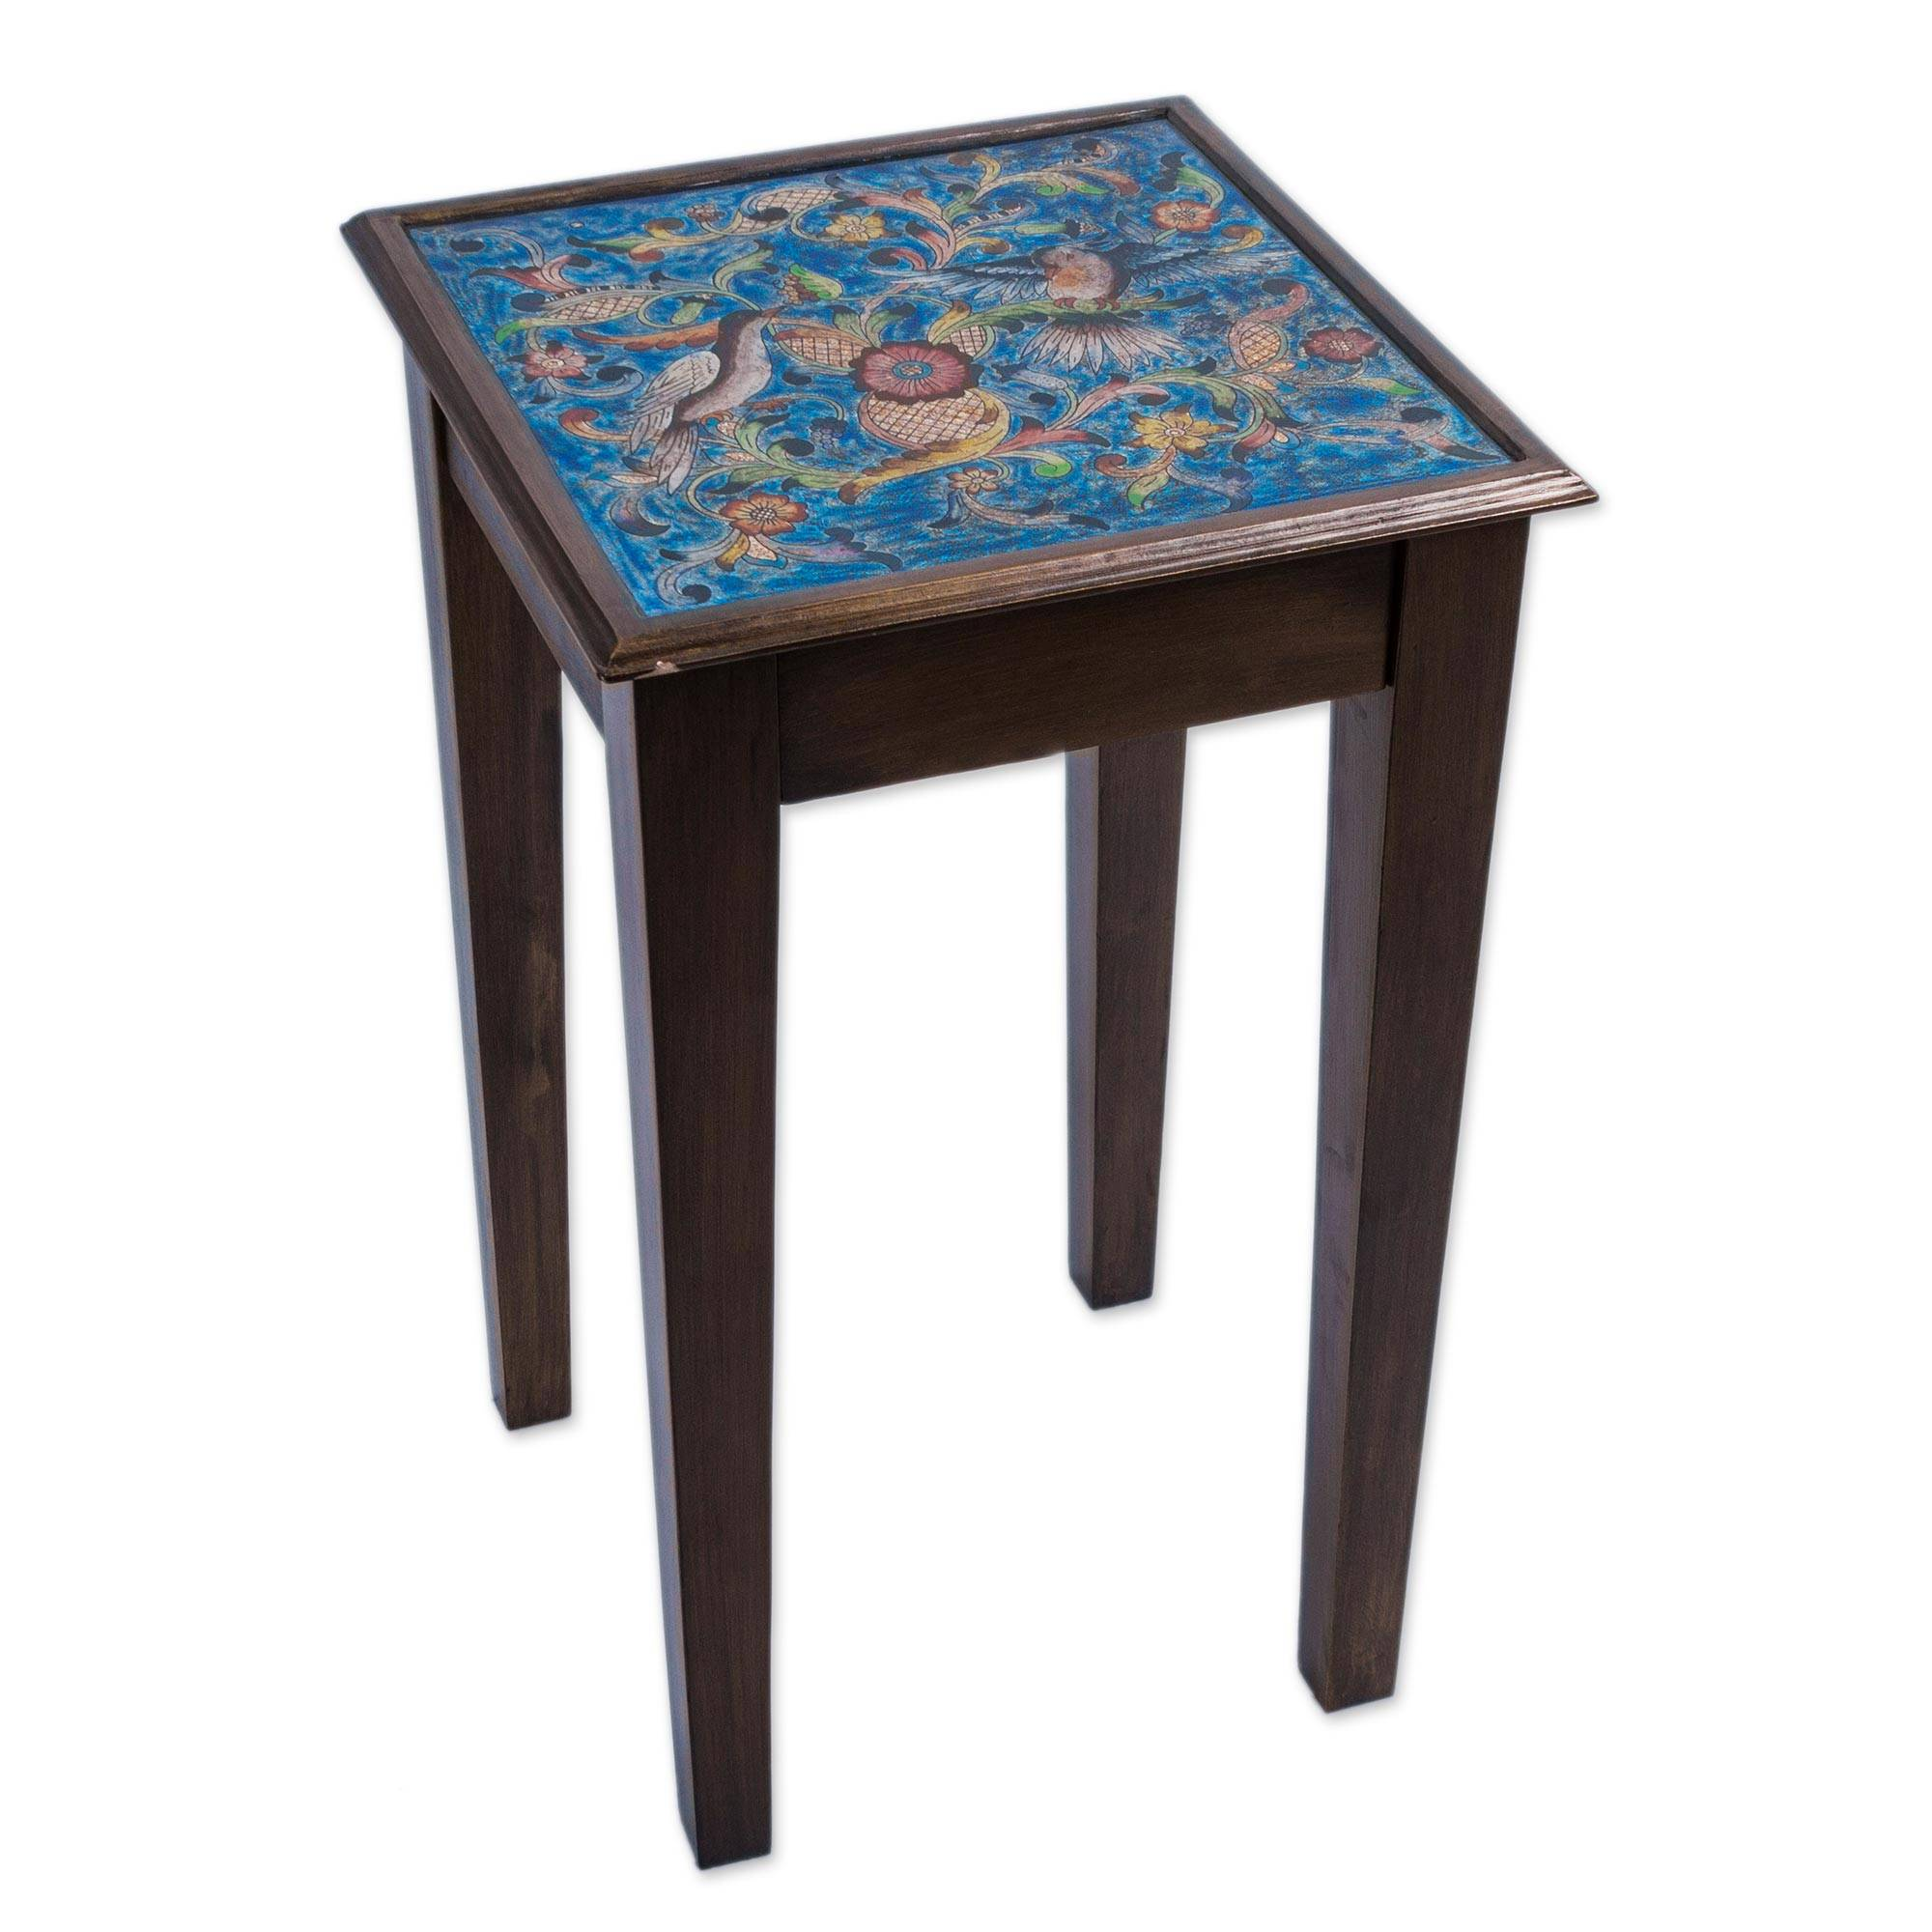 hand painted glass top wood accent table birds the heavens novica mirrored end pine trestle astoria patio pier one imports clearance furniture ikea narrow turquoise entry chair